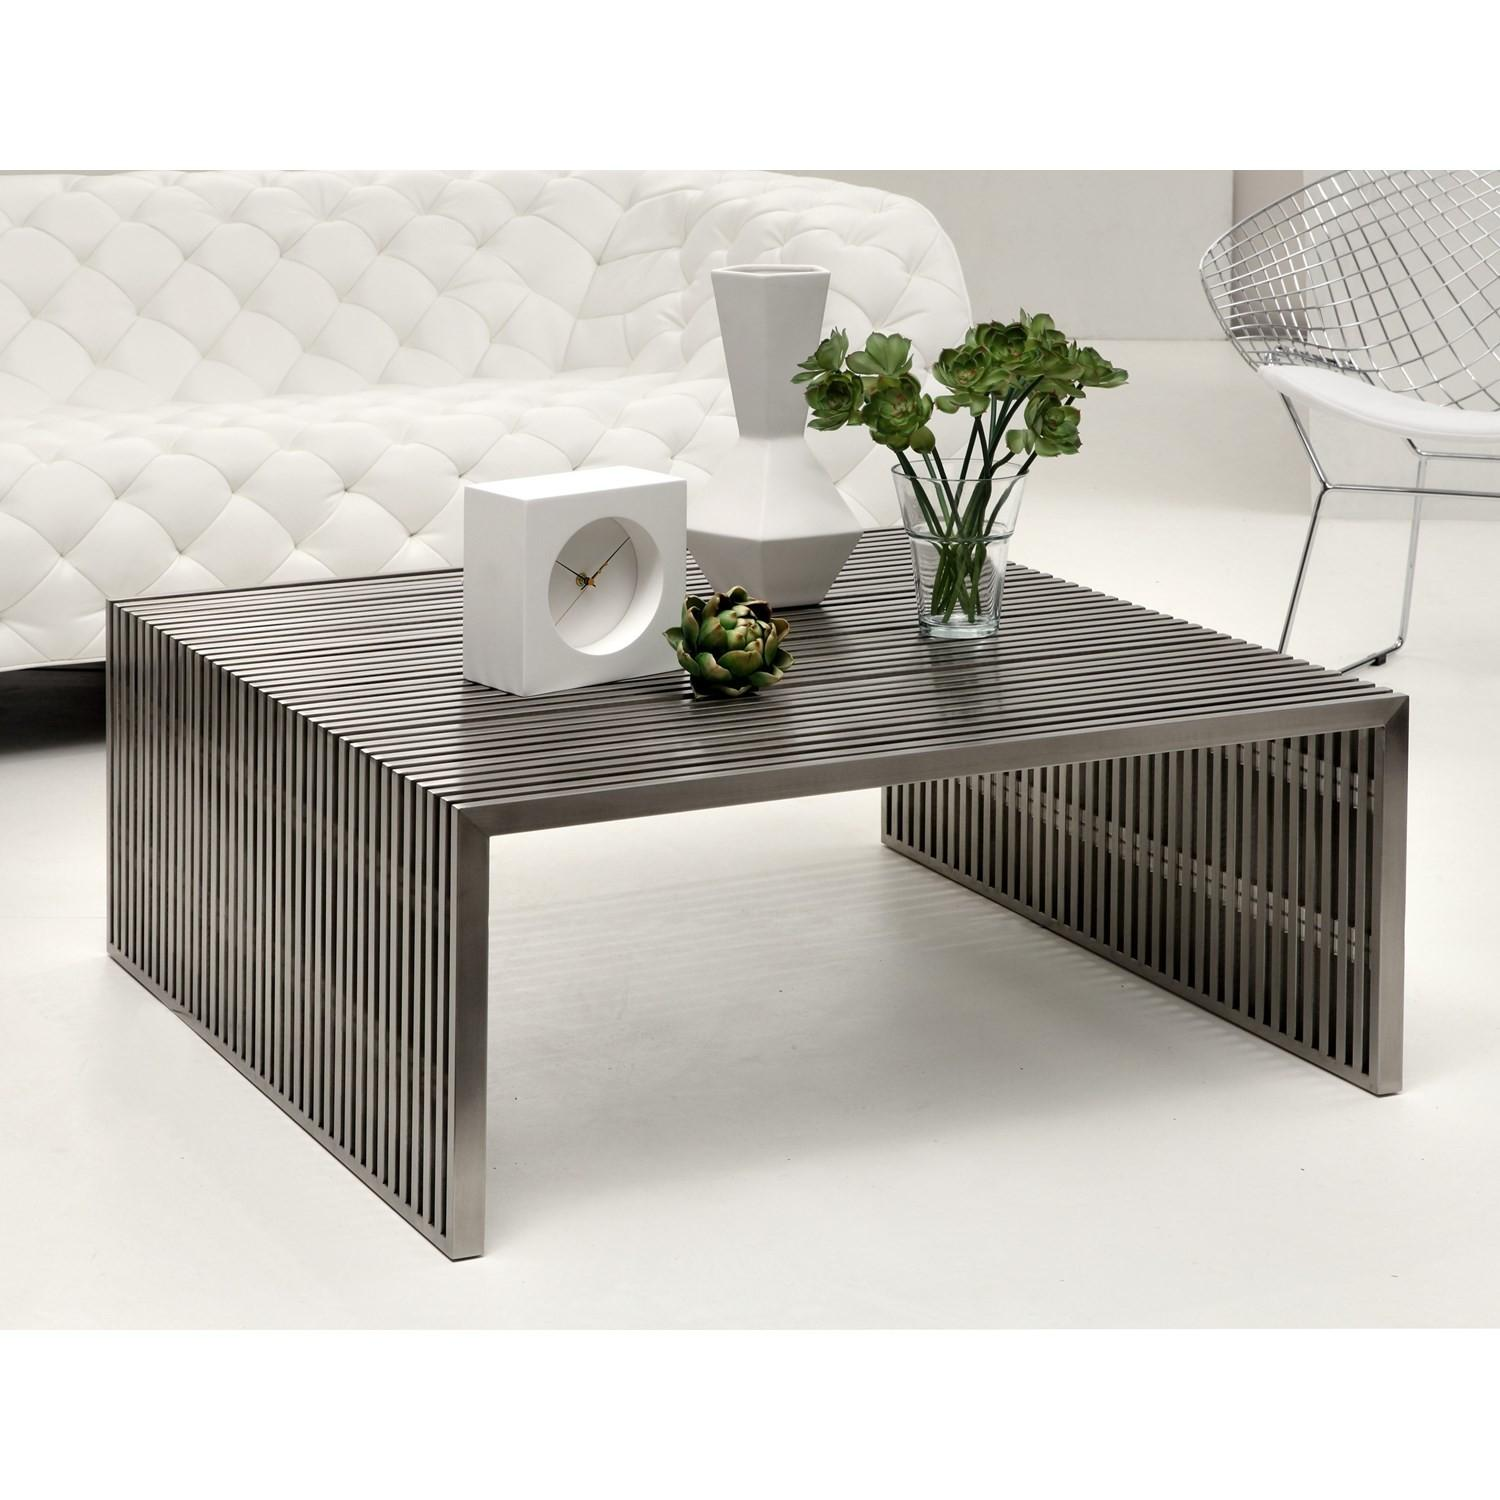 Zuo Modern Furniture Novel Square Coffee Table